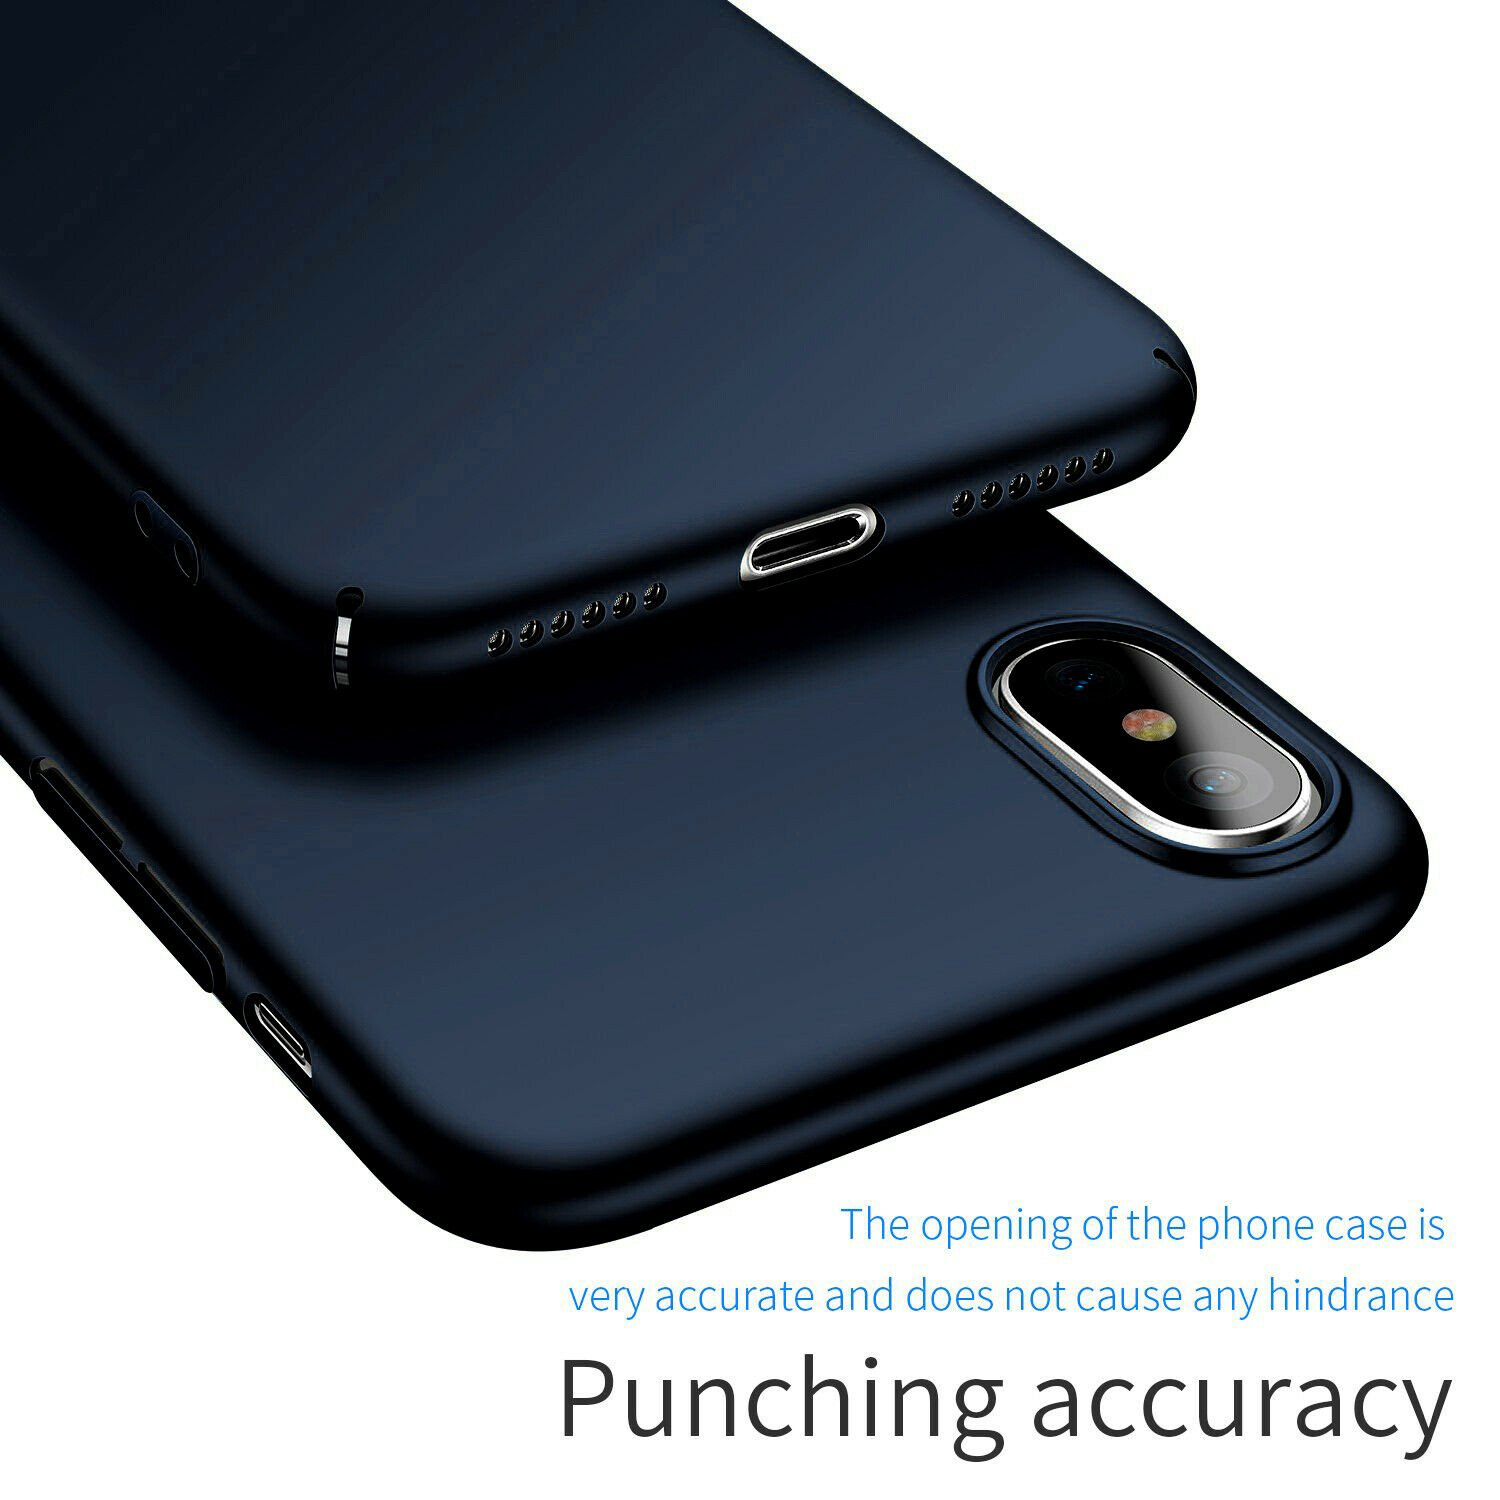 Case-Thin-Hard-Cover-Tempered-Glass-Screen-Protector-For-iPhone-X-XR-XS-Max thumbnail 31